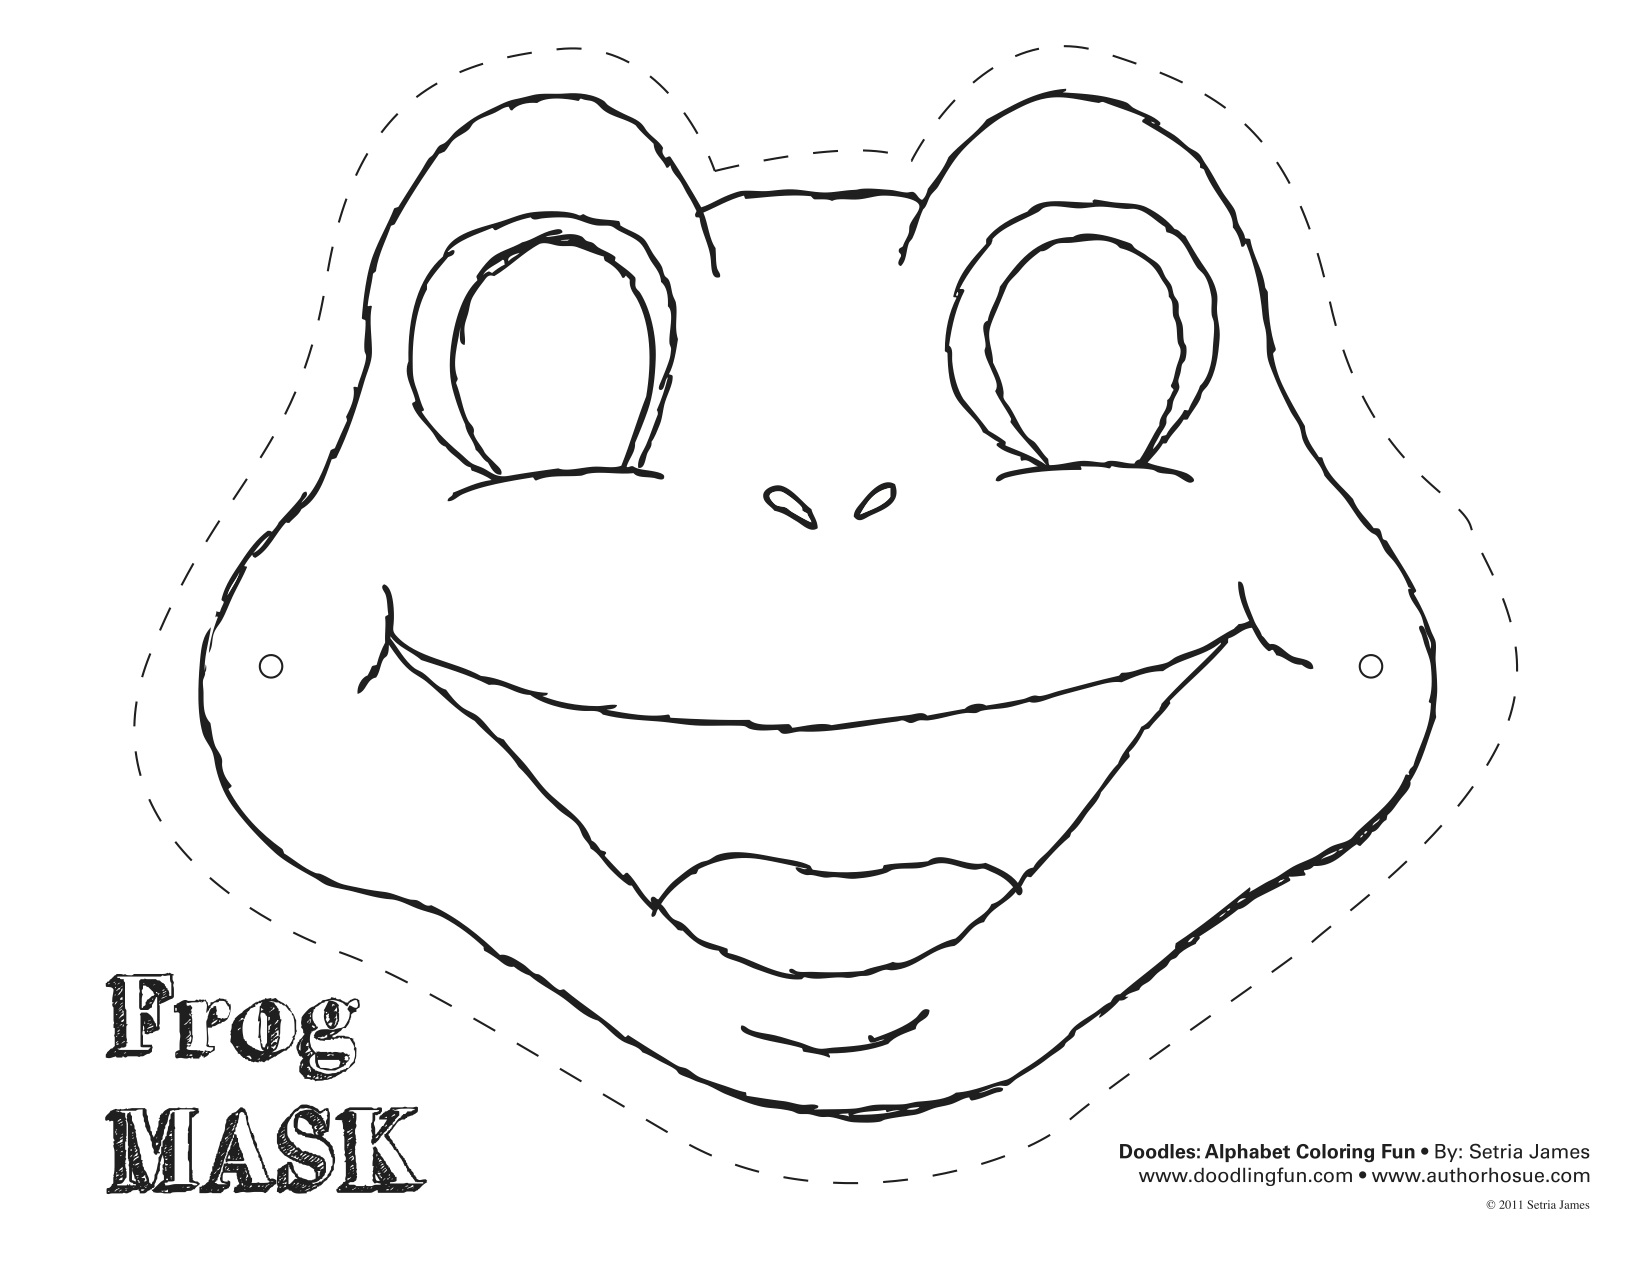 Printable Mask Template Mariola Mariola7601 On Pinterest